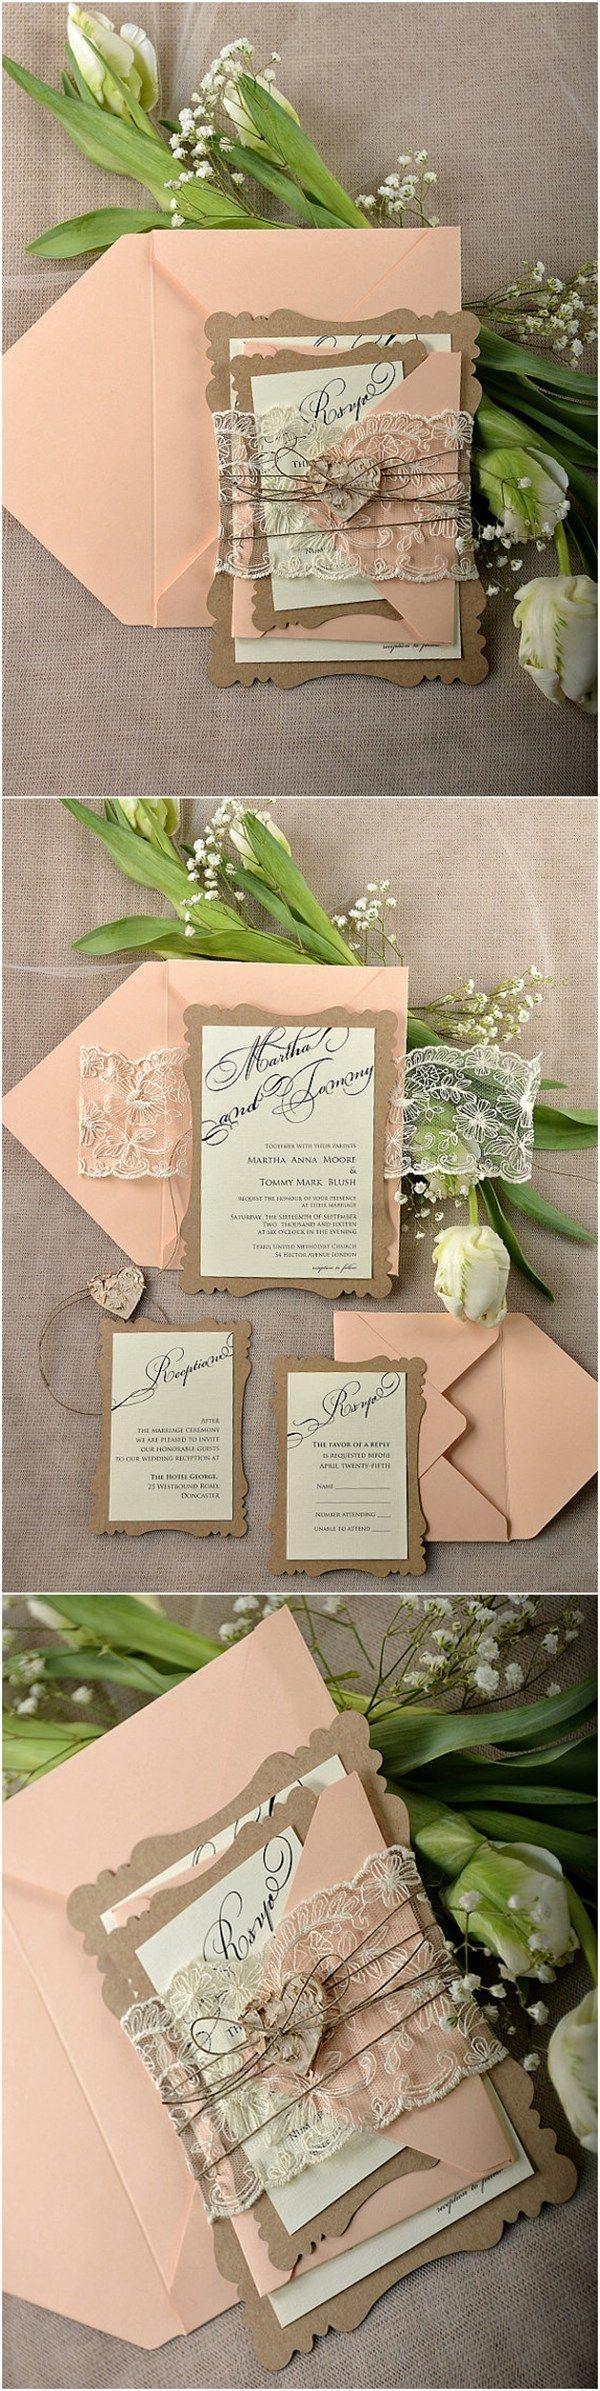 pink and gold wedding invitation kits%0A Rustic Eco Peach Lace Laser Cut Wedding Invitation Kits  Deer Pearl Flowers